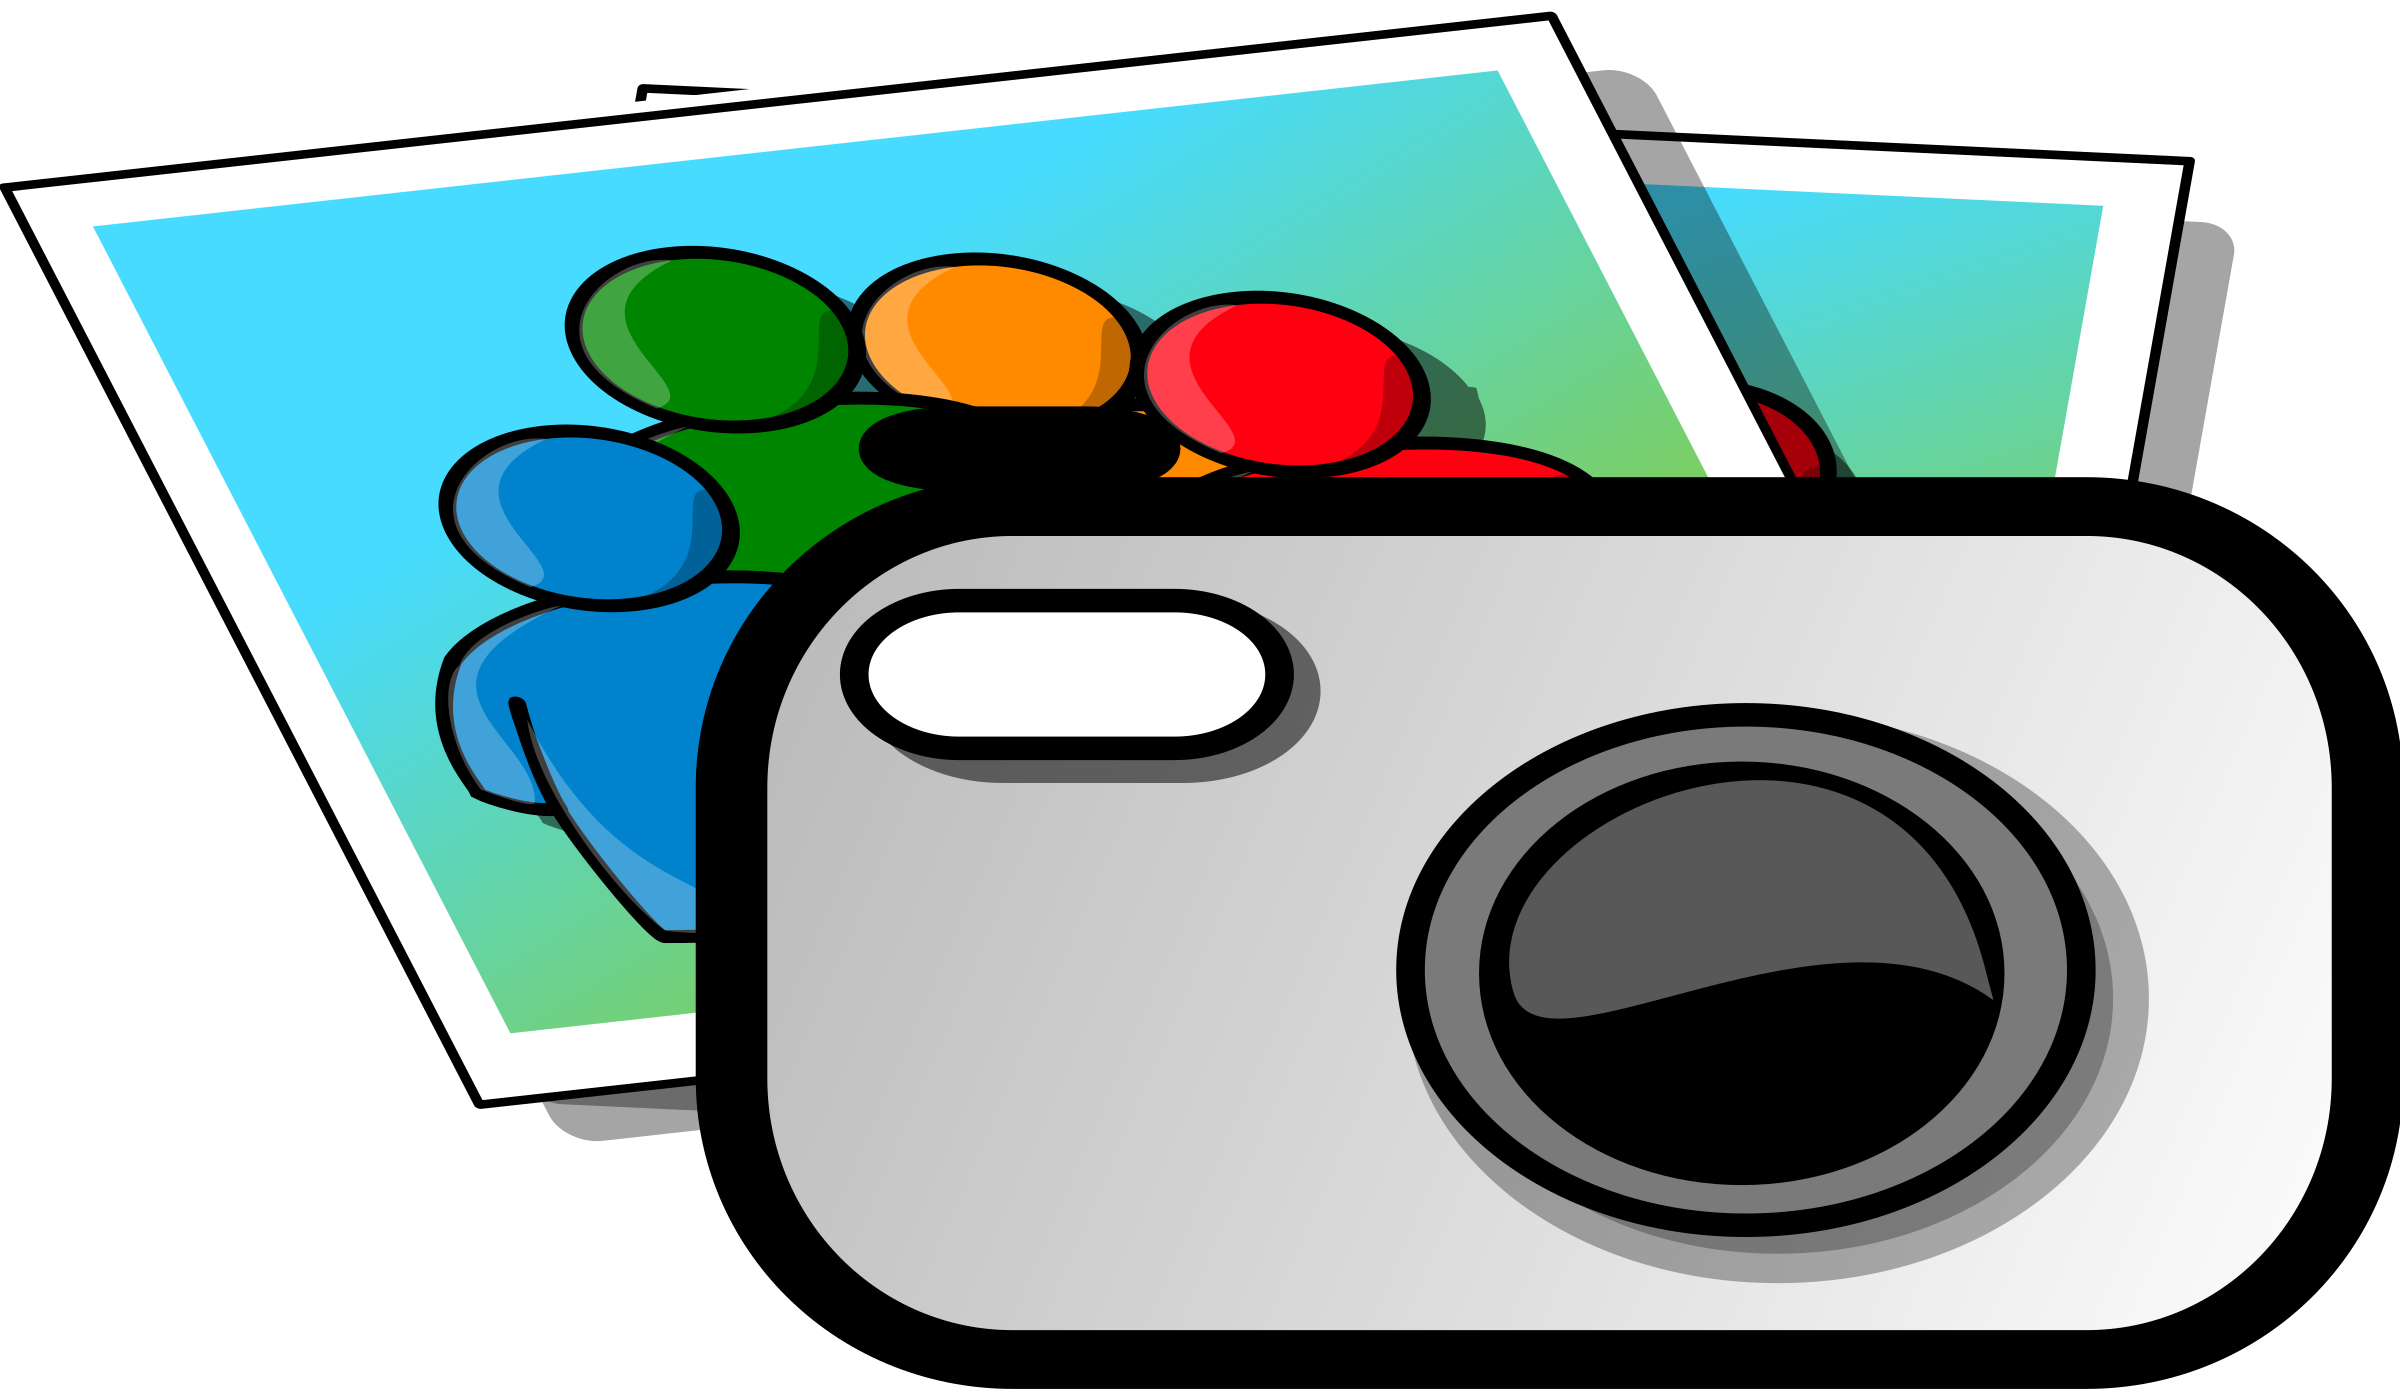 graphic free library Photograph clipart. Photo camera big image